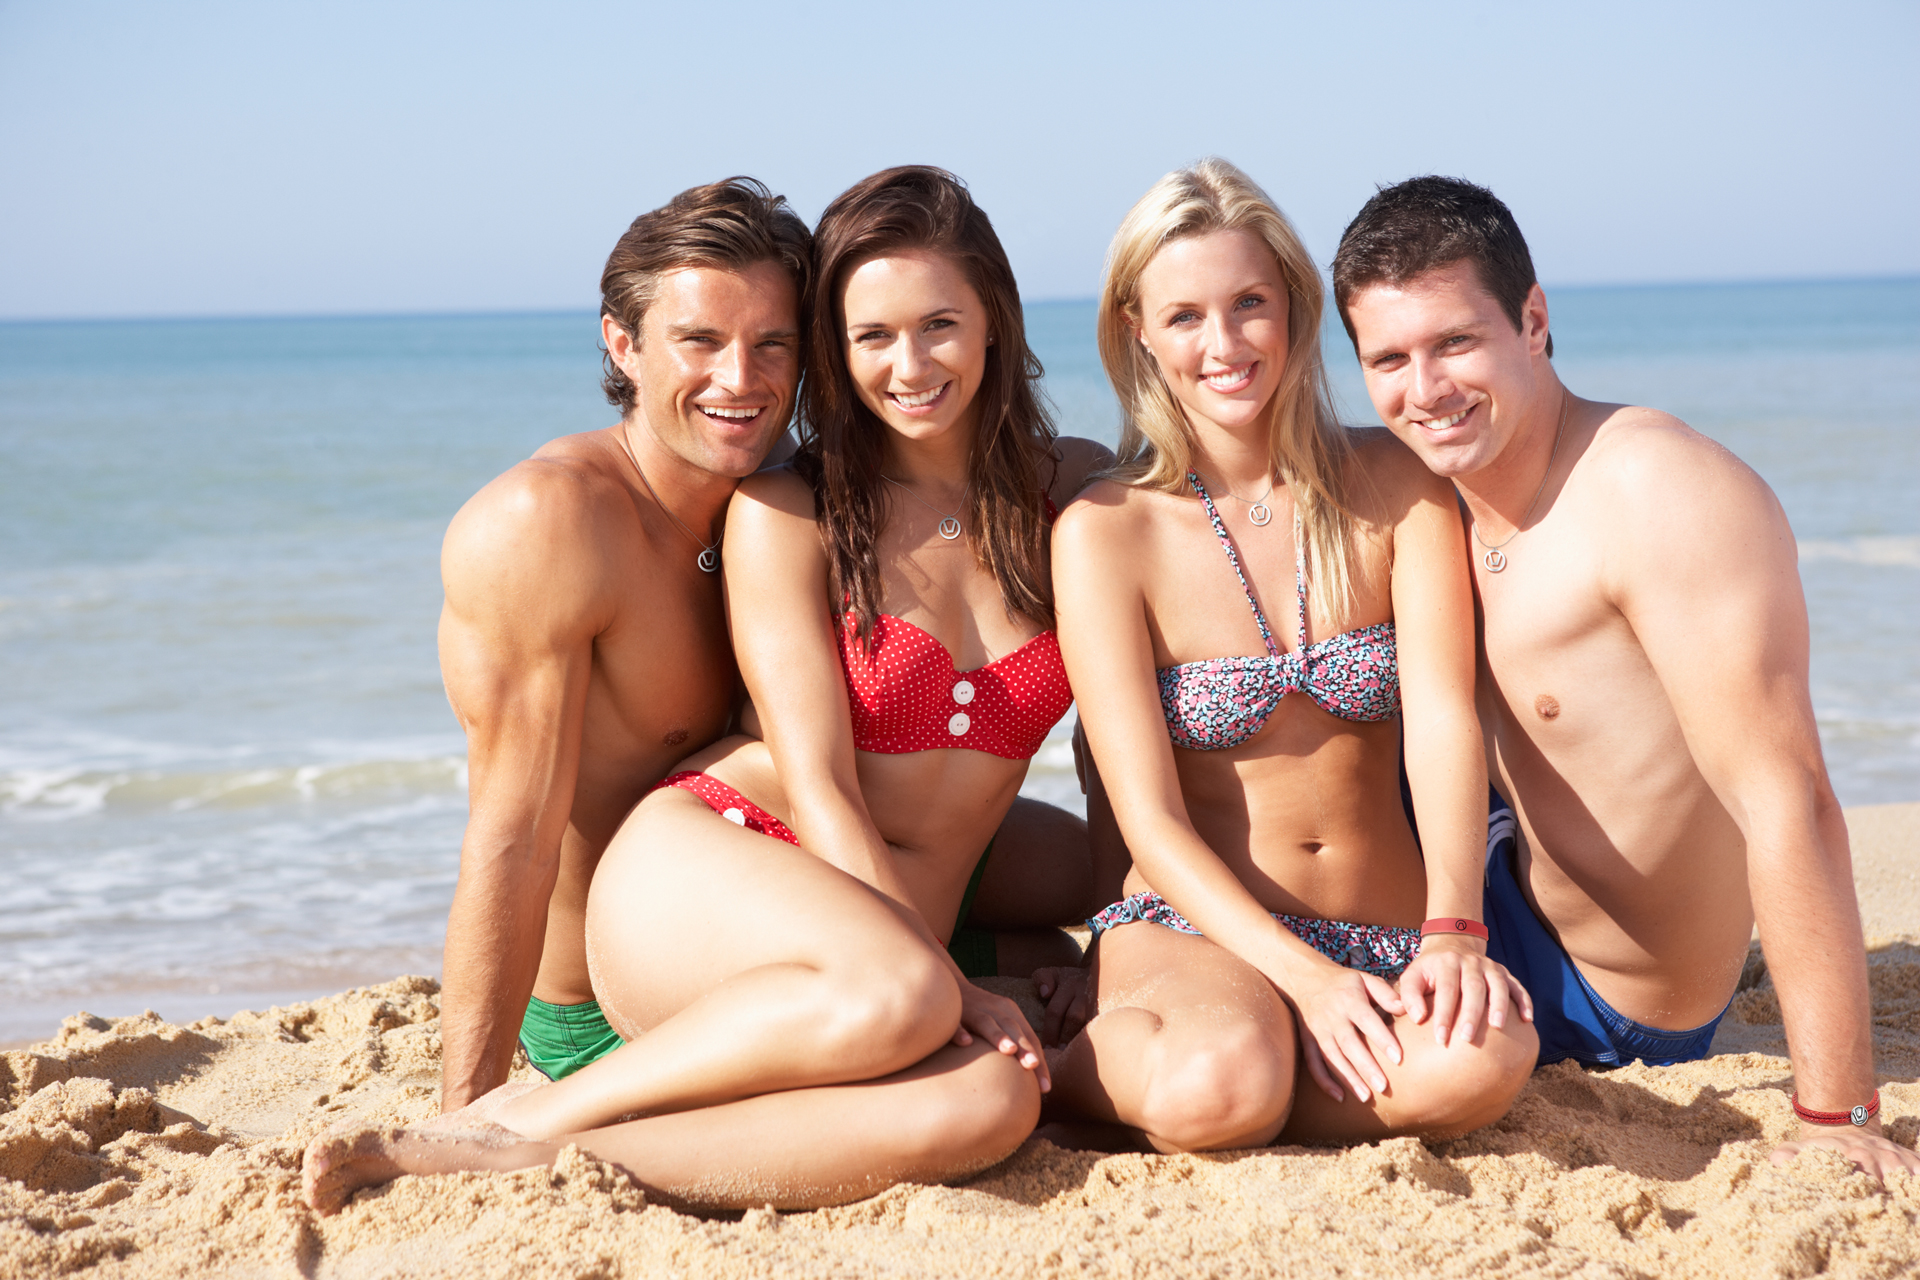 Four silver swinger symbol necklaces on two women and two men at the beach in swimsuits